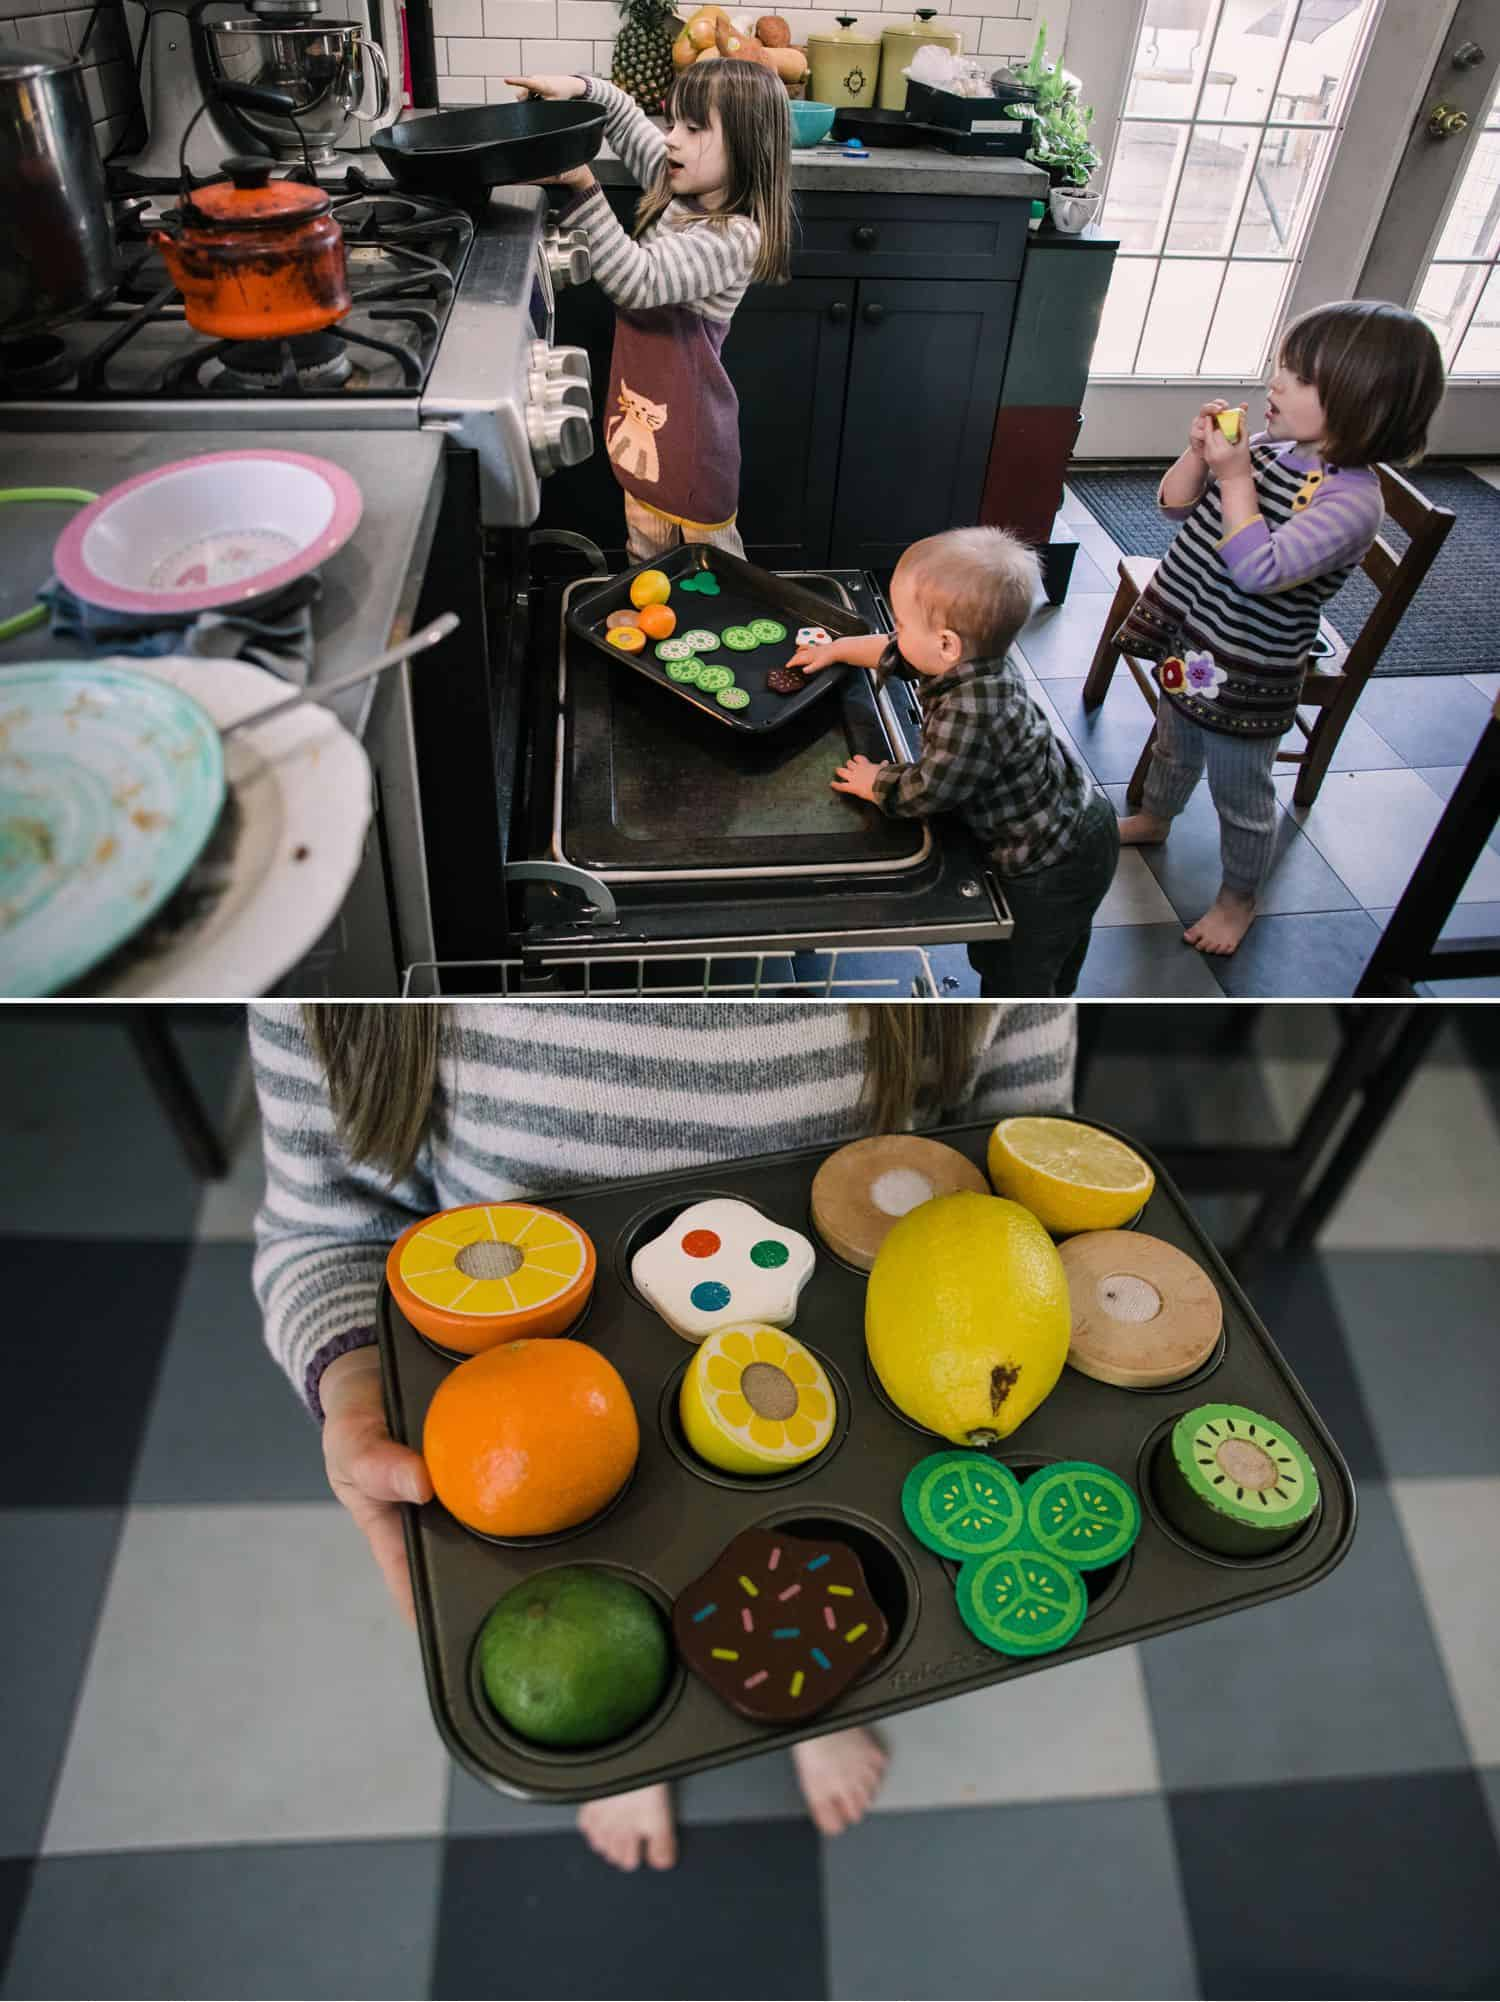 Fearless Family Photos All Have These 4 Ingredients: Lifestyle Photography - Three Sisters Prepare A Pretend Meal